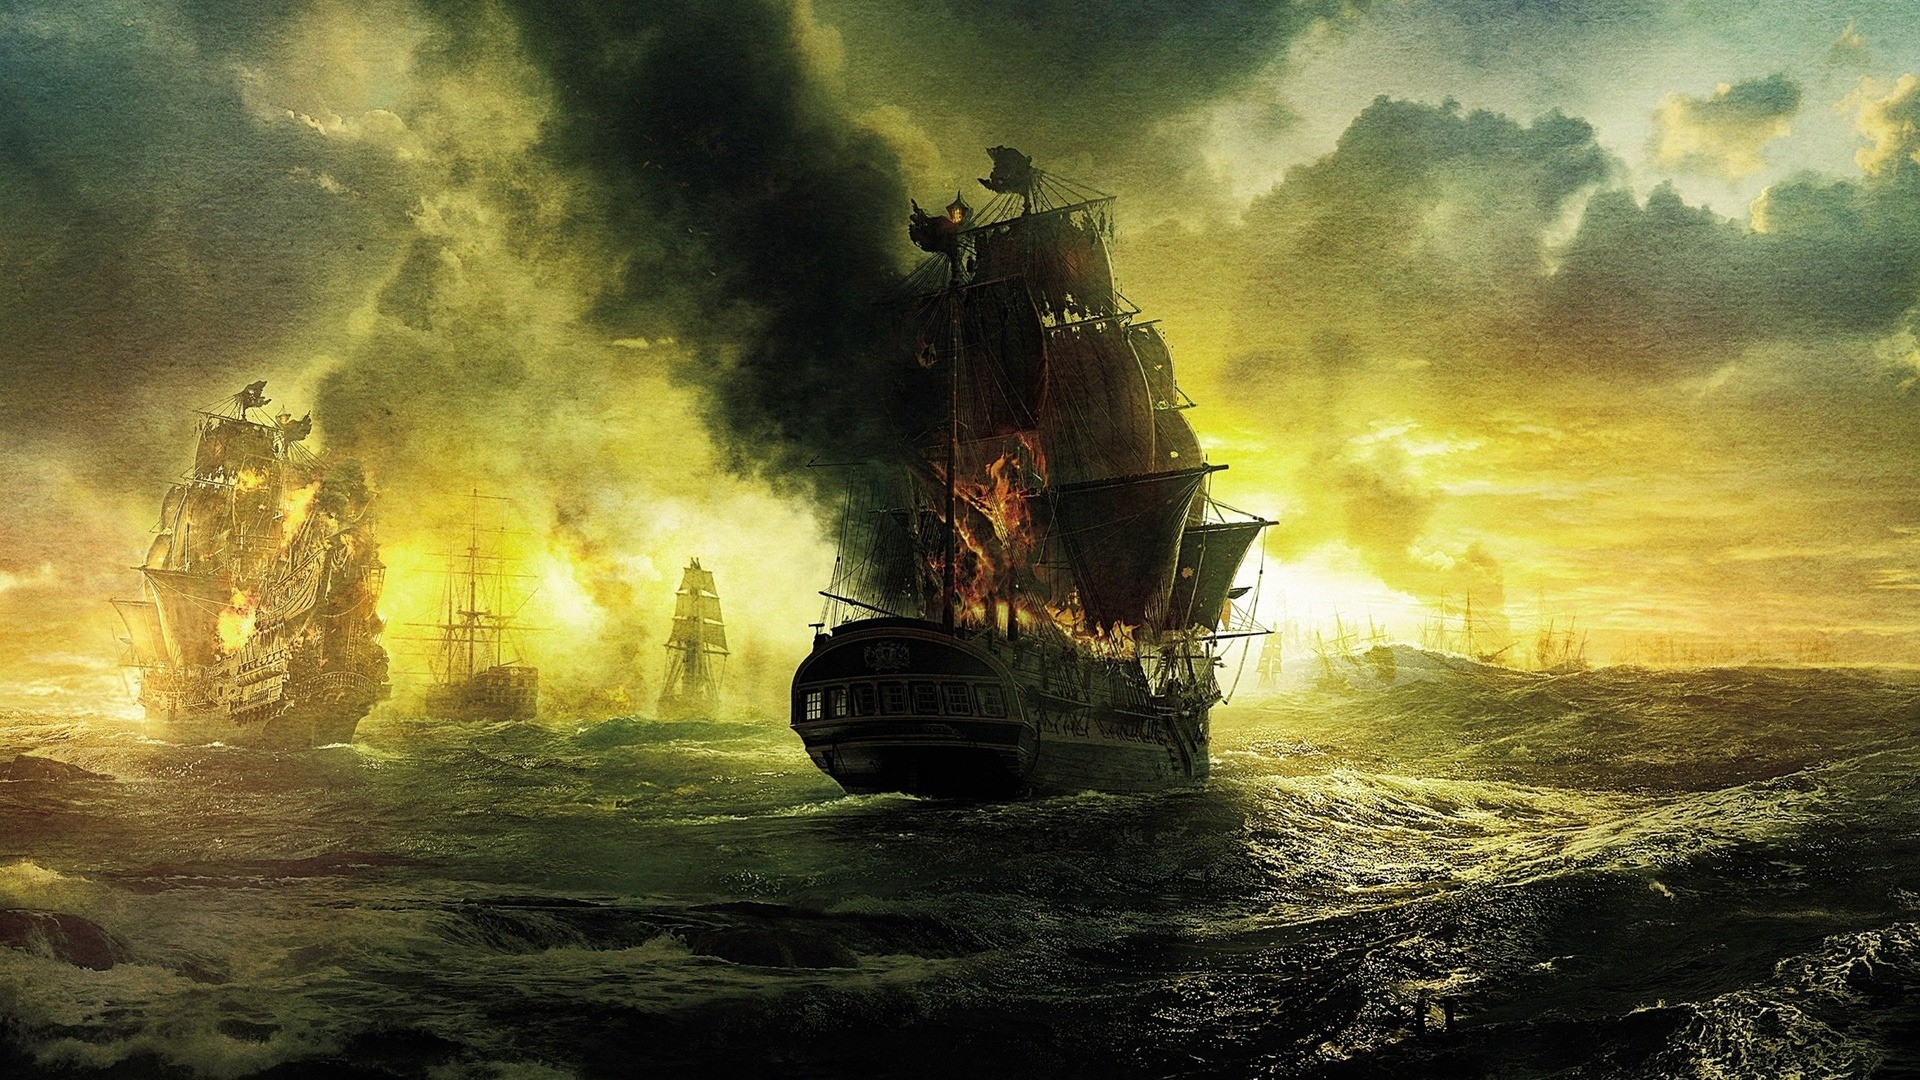 1920x1080 pirates-ship-on-fire-wallpaper (.